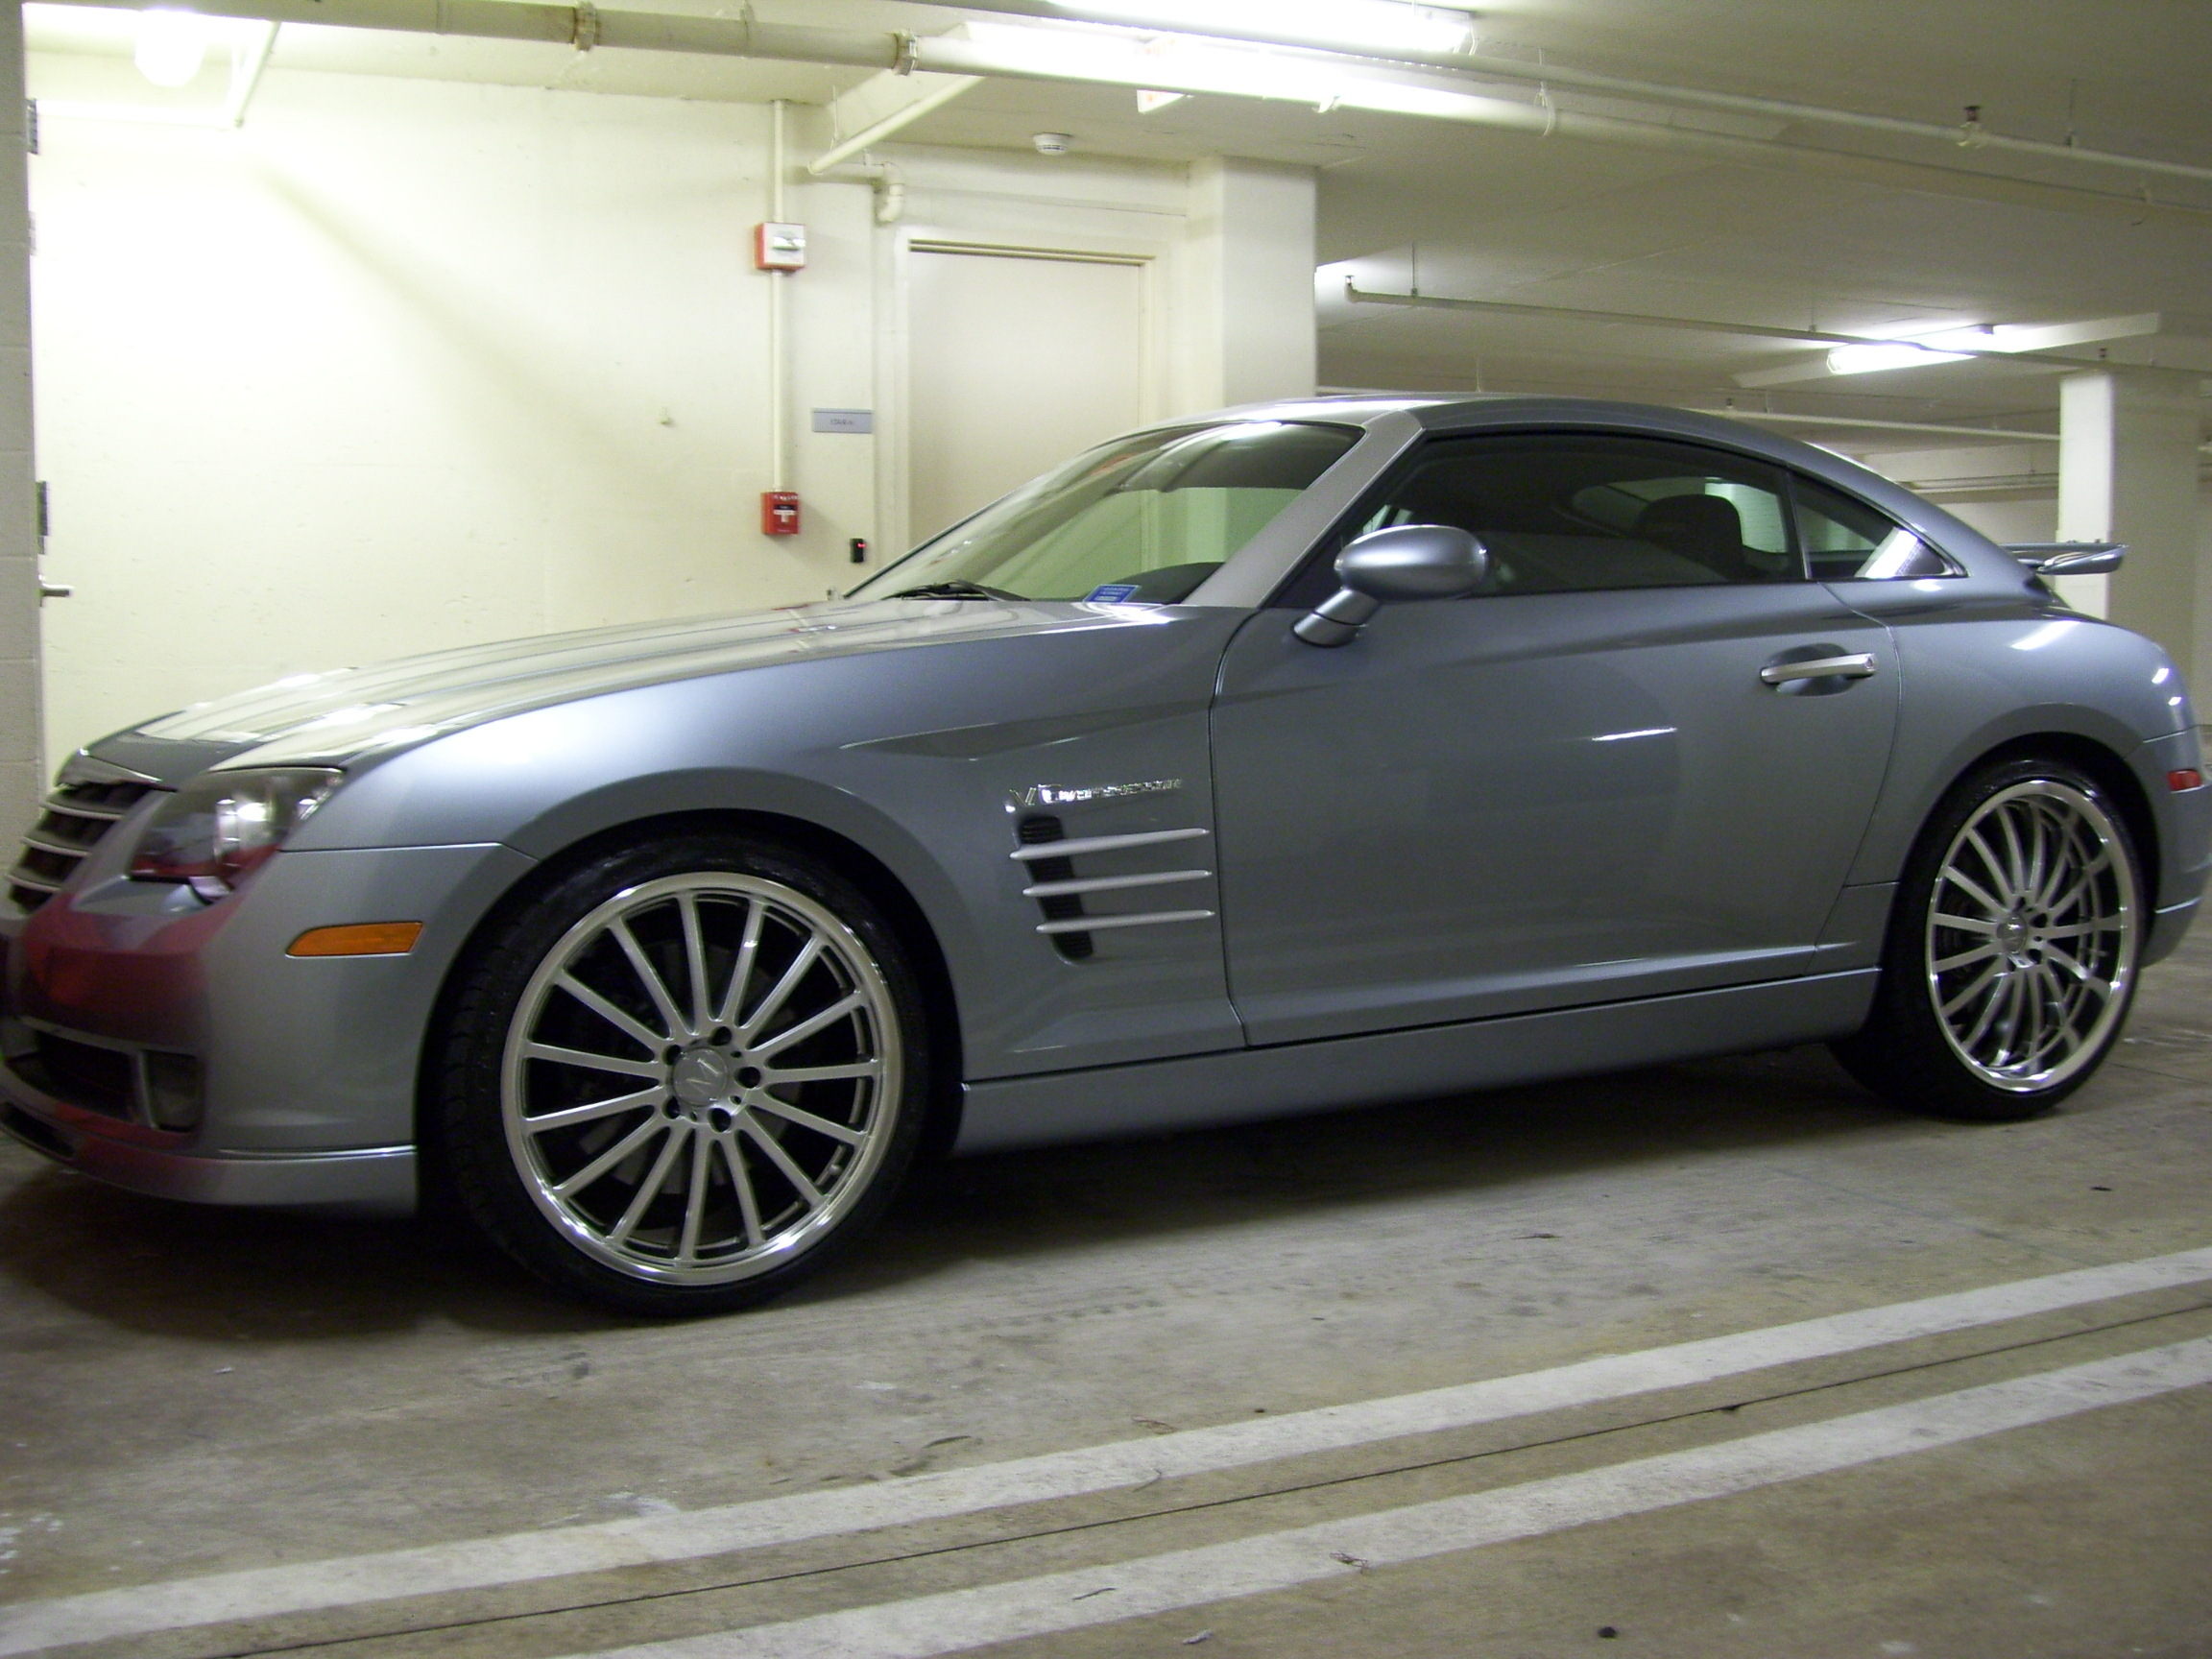 cgocifer's 2005 Chrysler Crossfire